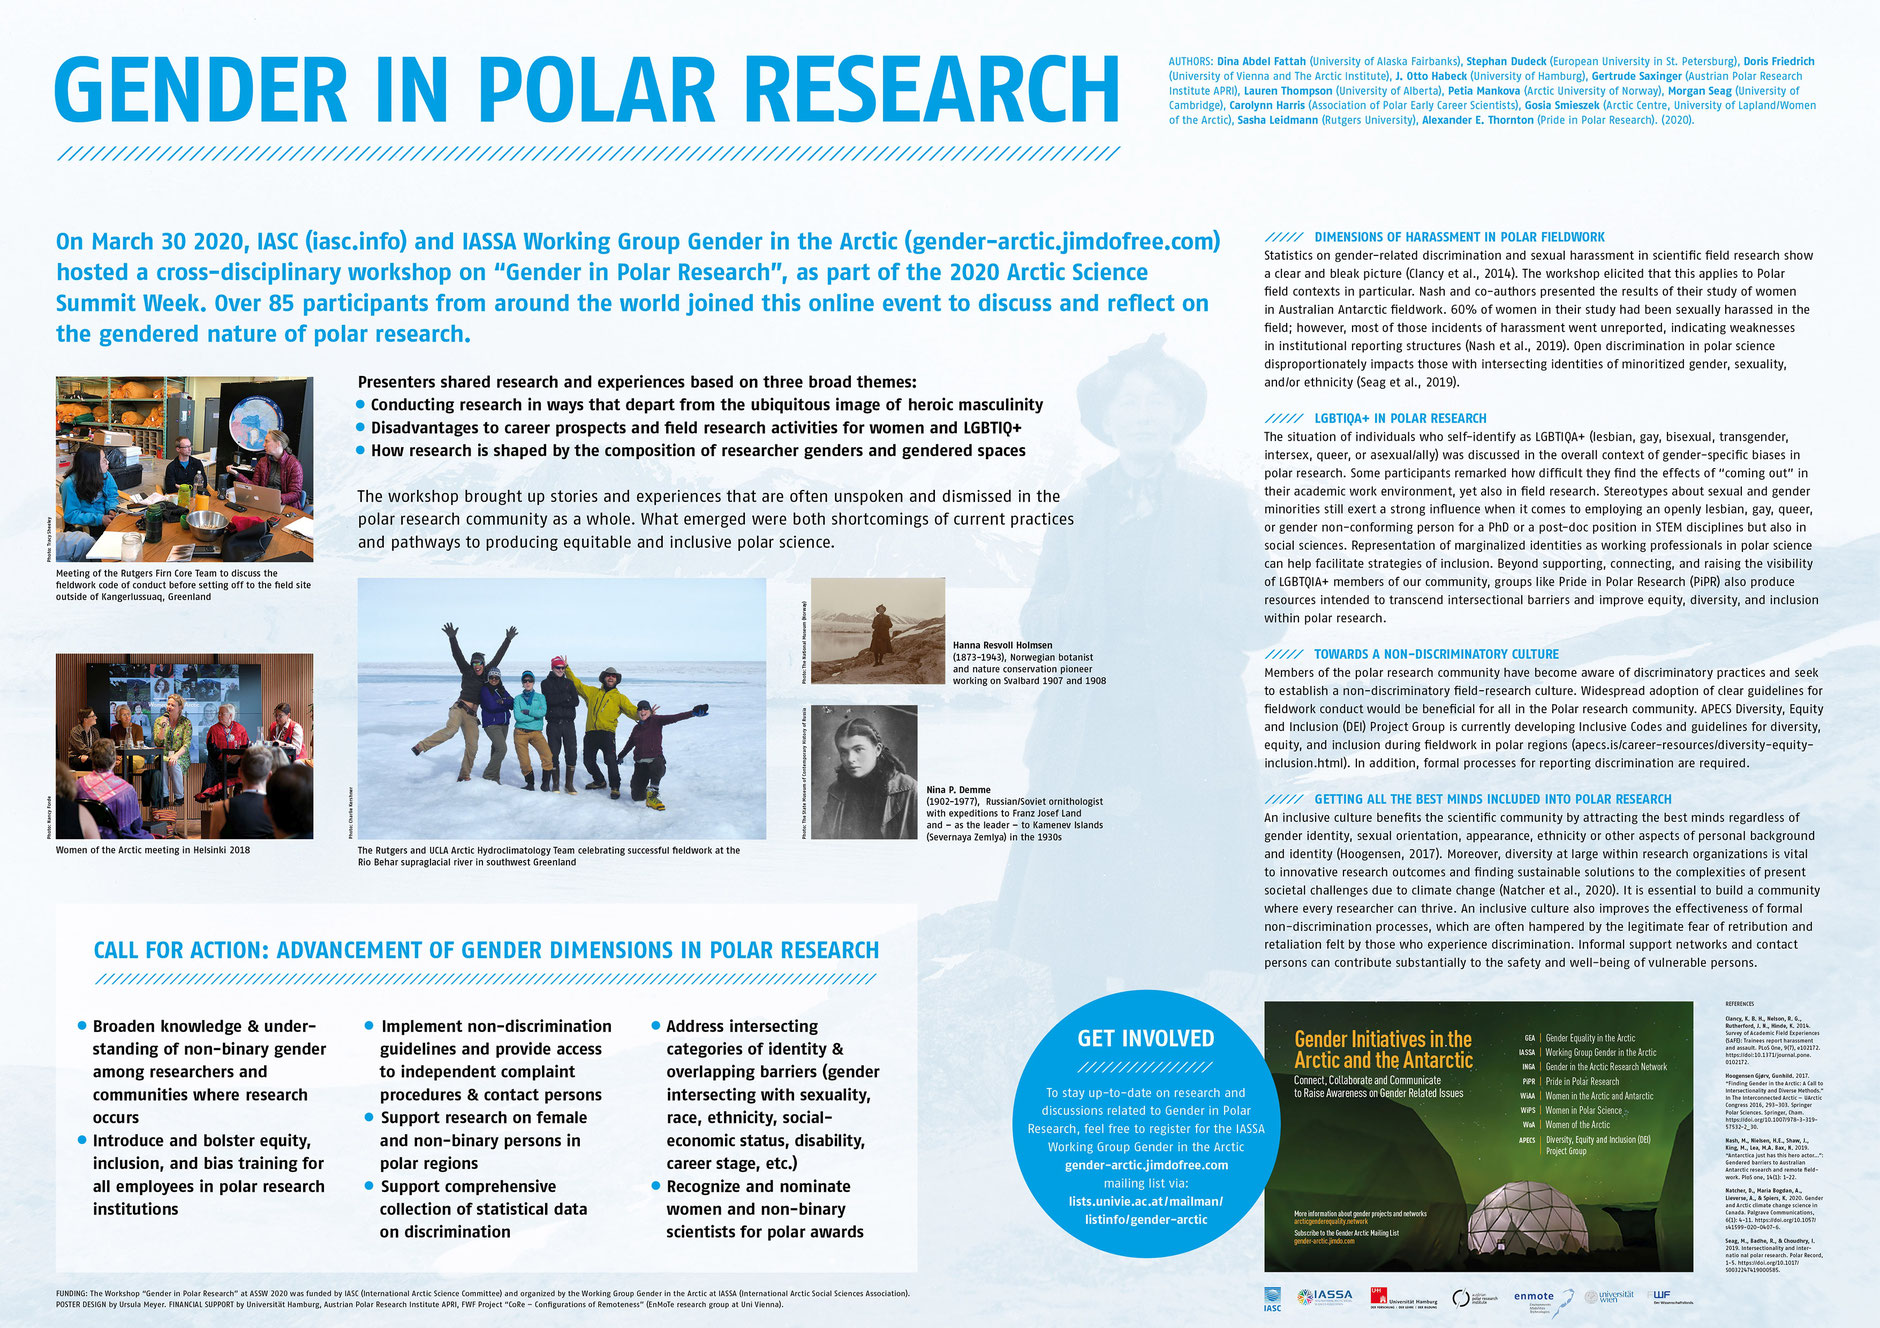 Gender in the Arctic poster